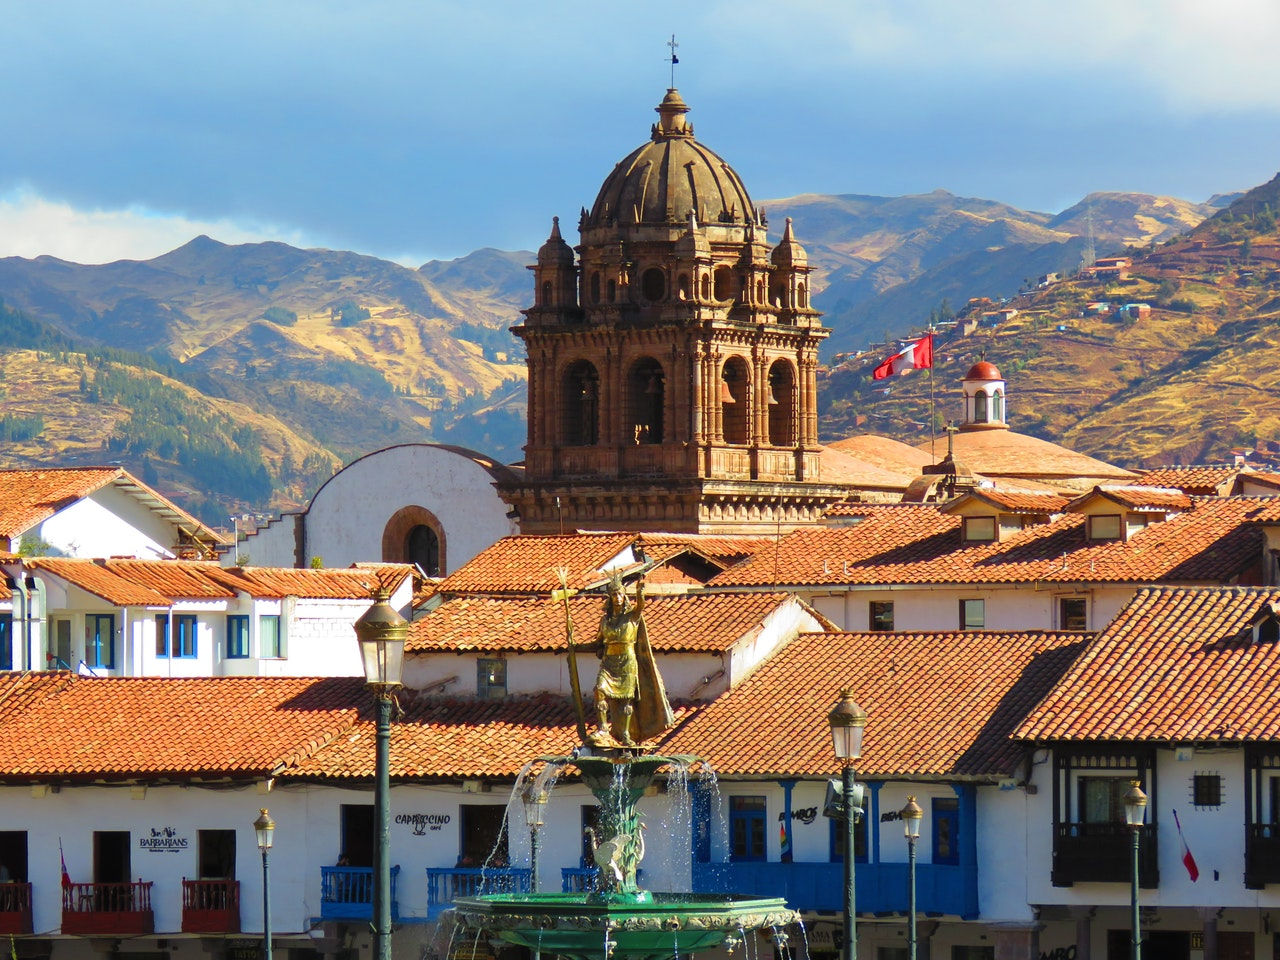 WHAT TO DO BEFORE TRAVELING TO SOUTH AMERICA